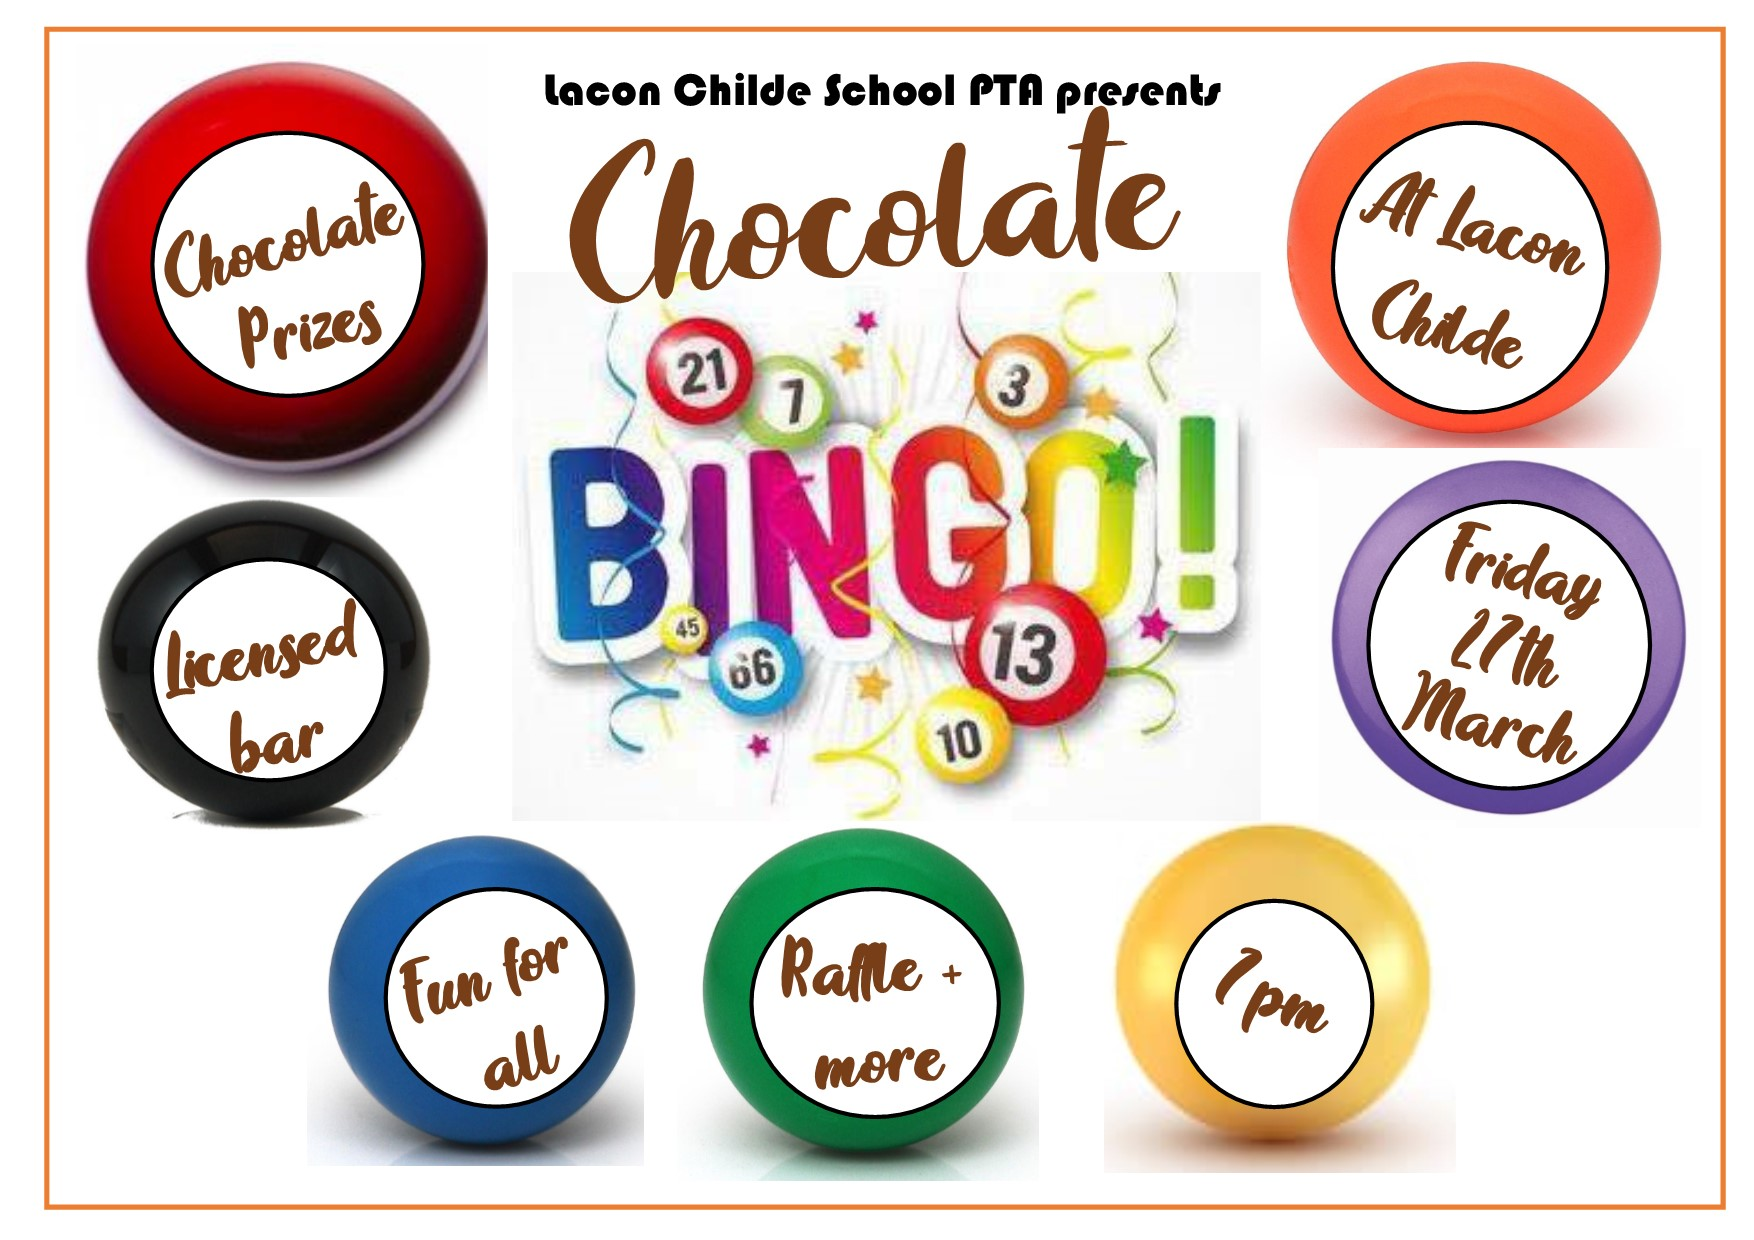 Unfortunately our Chocolate Bingo event had to be posponed due to Covid-19. We were able to sell the donated chocolate, enabling us to be able to hold this event at a later date. Thank you everyone for all of your generous donations.